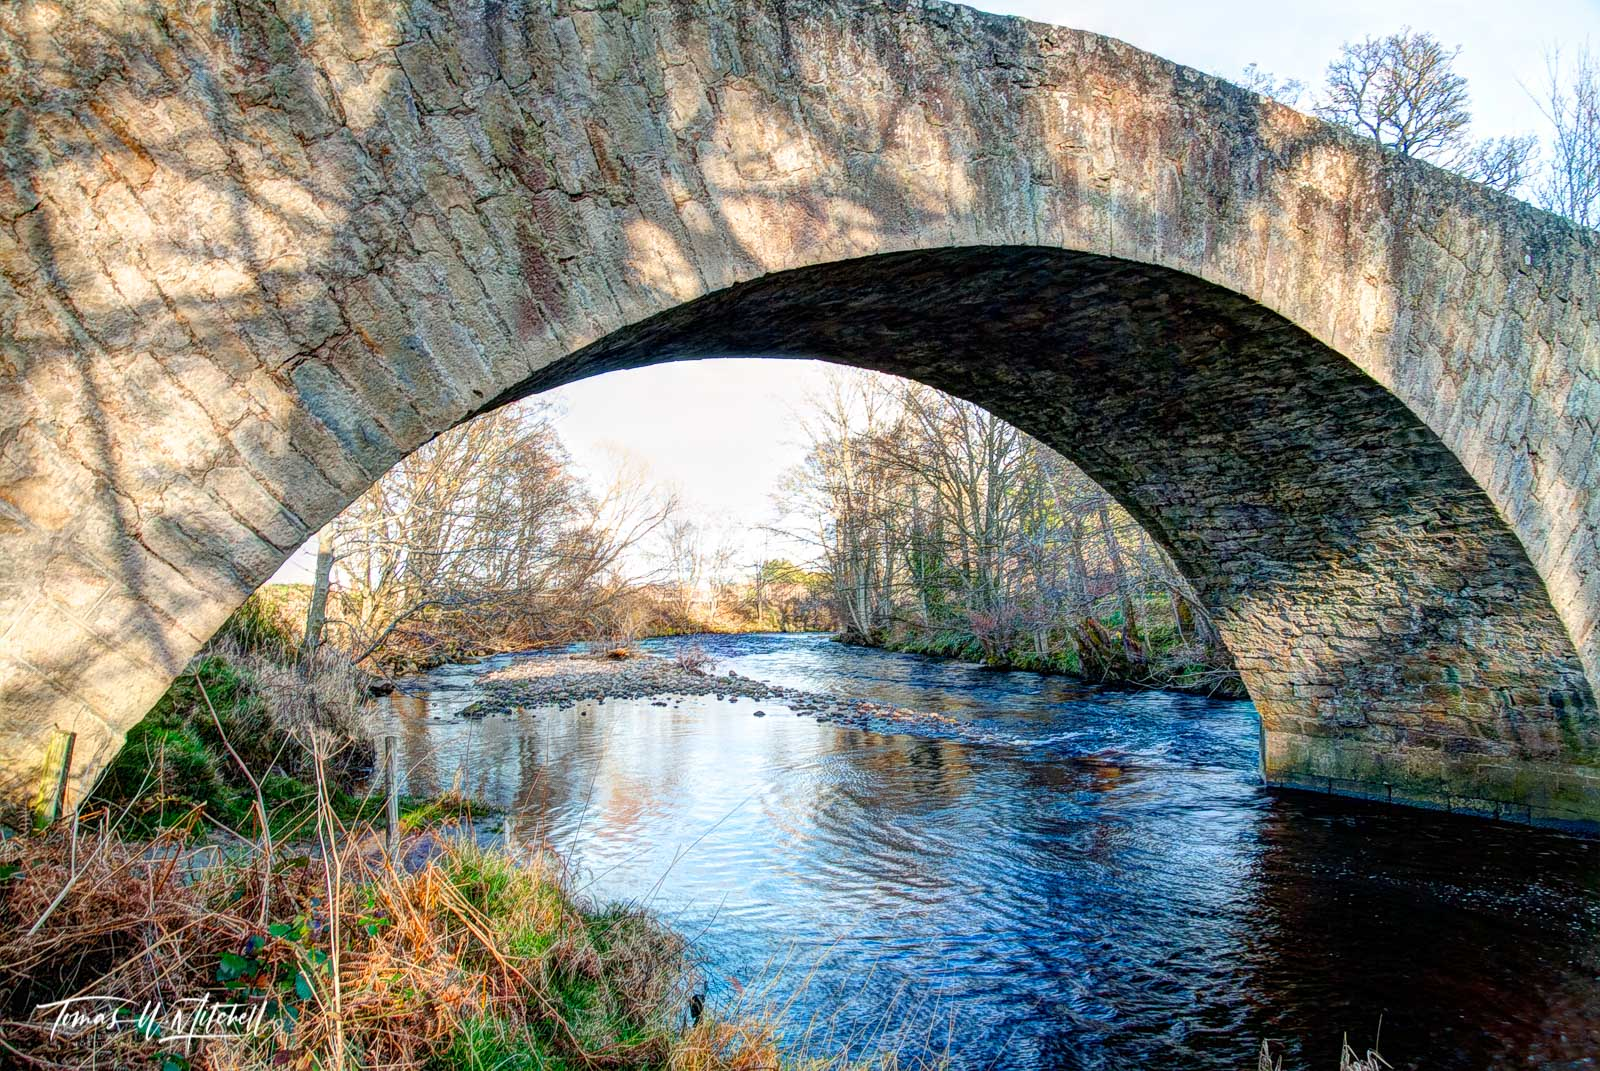 Limited Edition of 50 Museum Grade, Fine Art Prints. This bridge was build in the 1700's by General Wade as part of the Military...